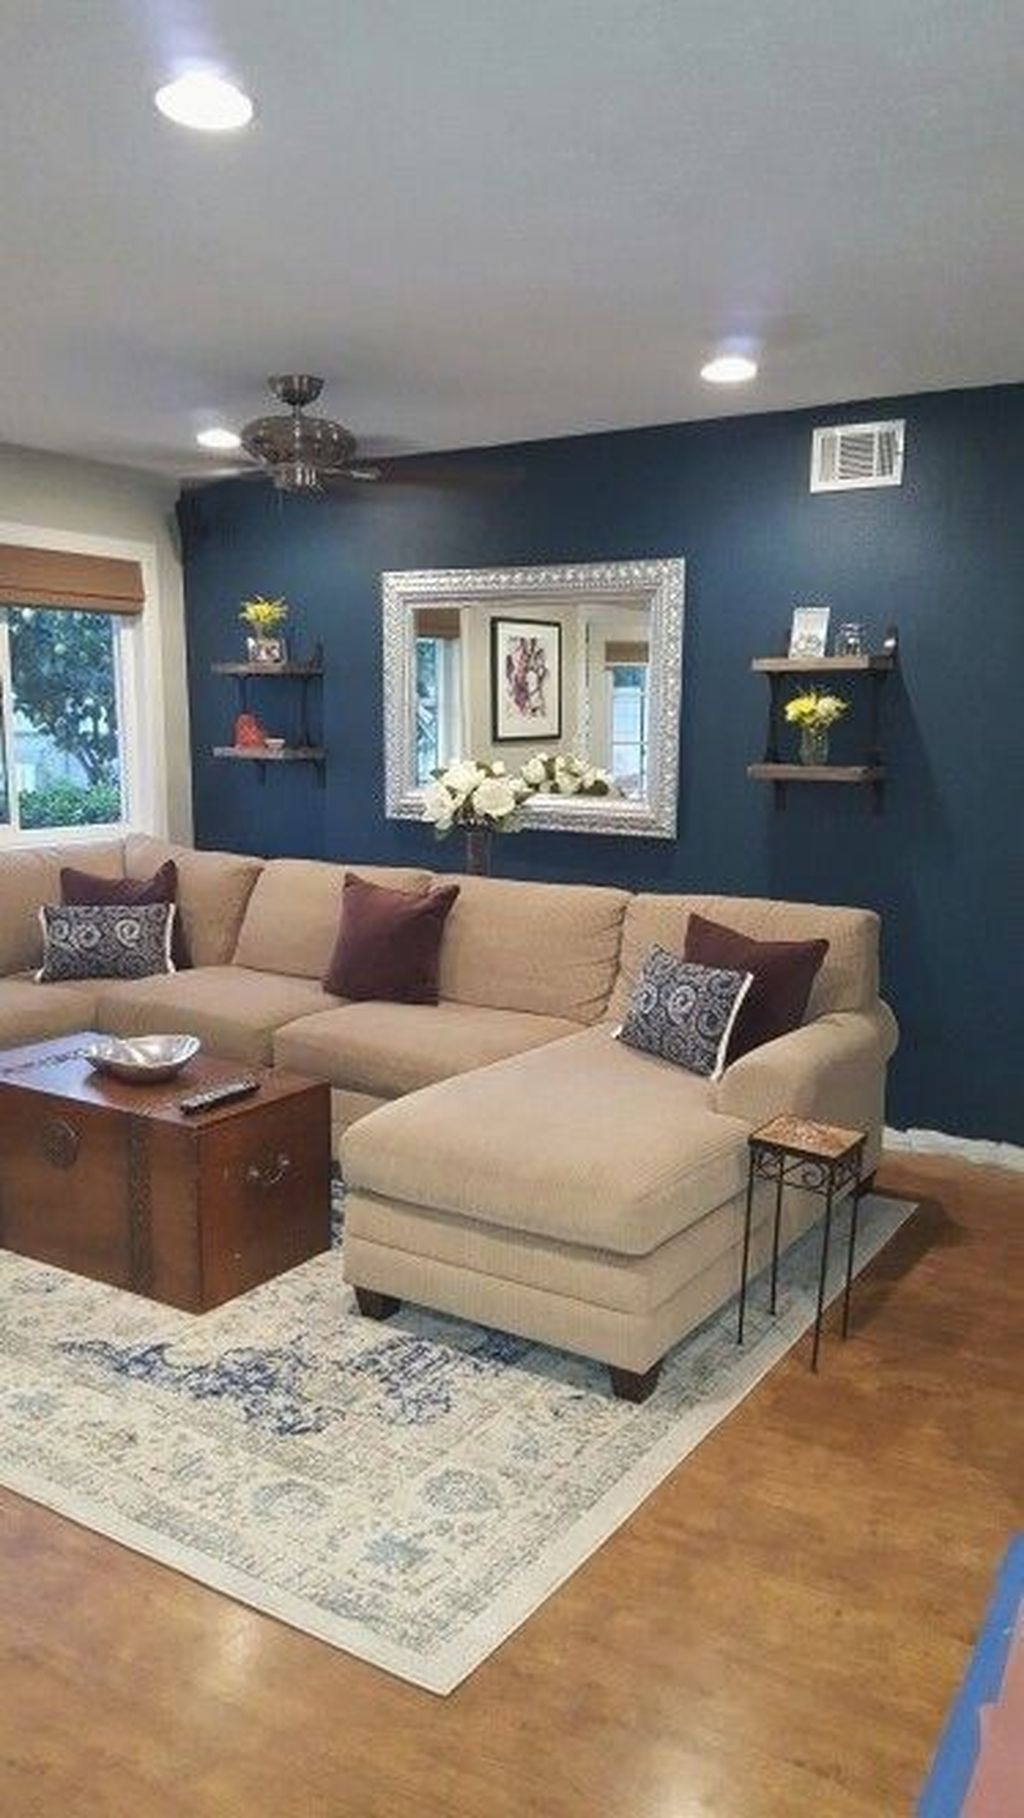 44 The Best Paint Color Ideas For Your Living Room Living Room Wall Color Accent Walls In Living Room Blue Living Room Living room accent colors